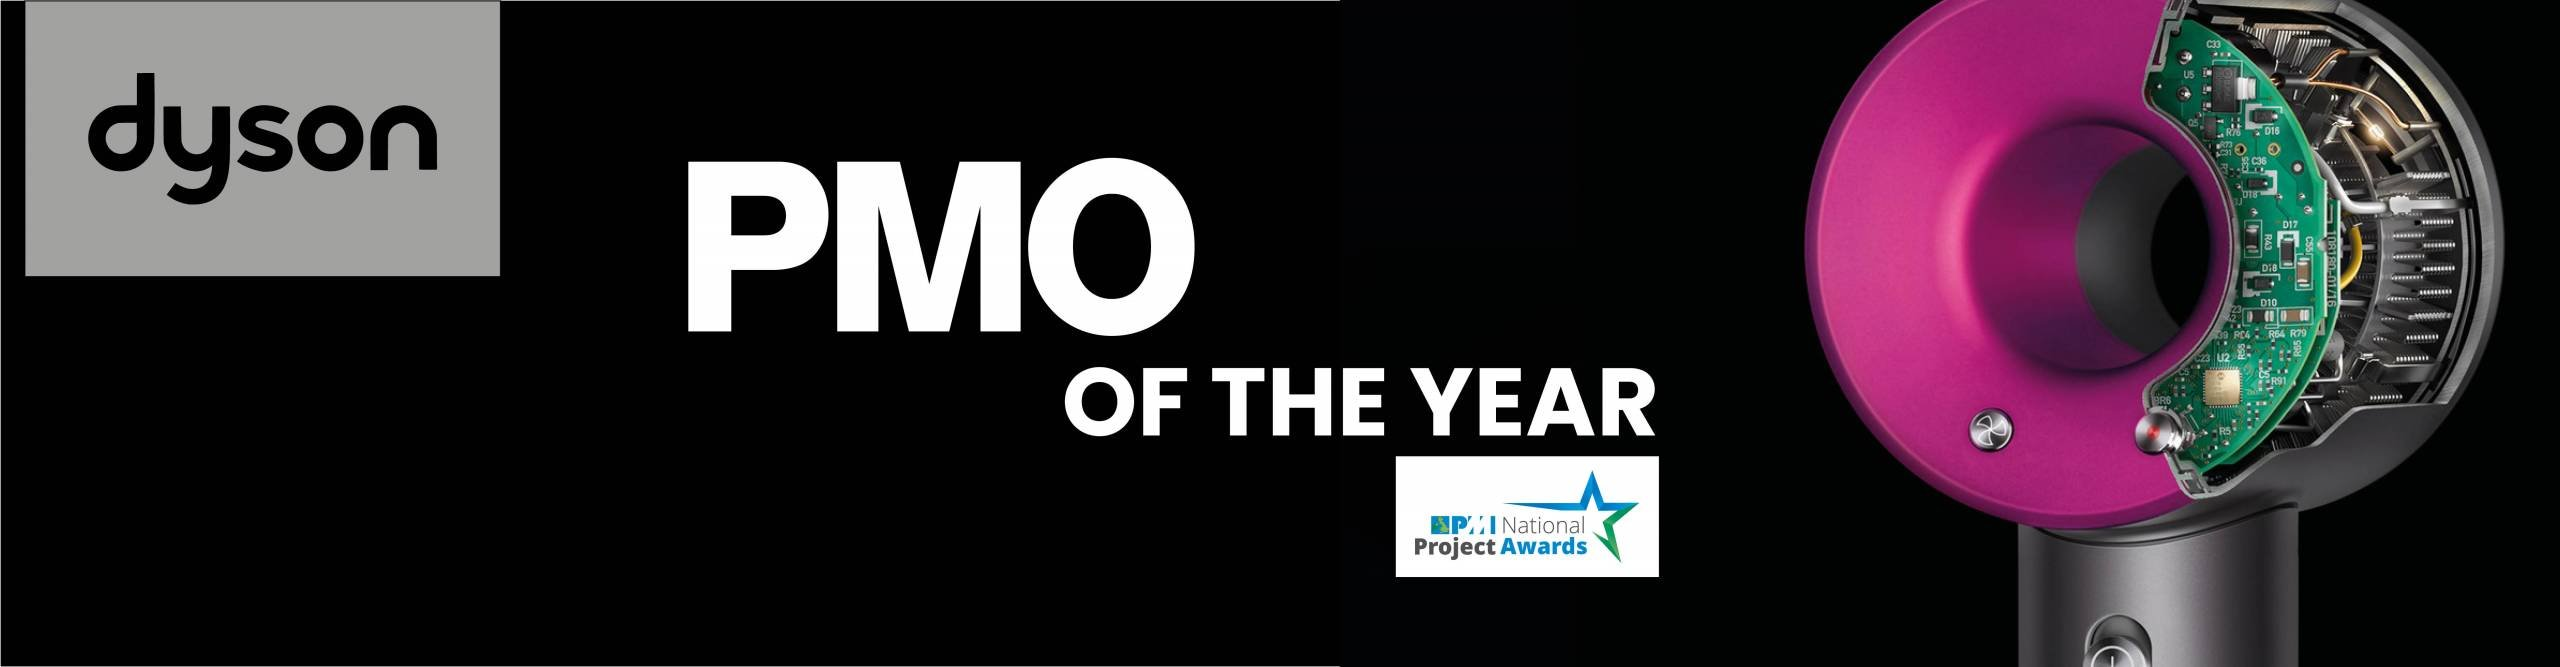 Dyson   Winner of PMO of the Year 2019 - PMI National Awards   Case Study